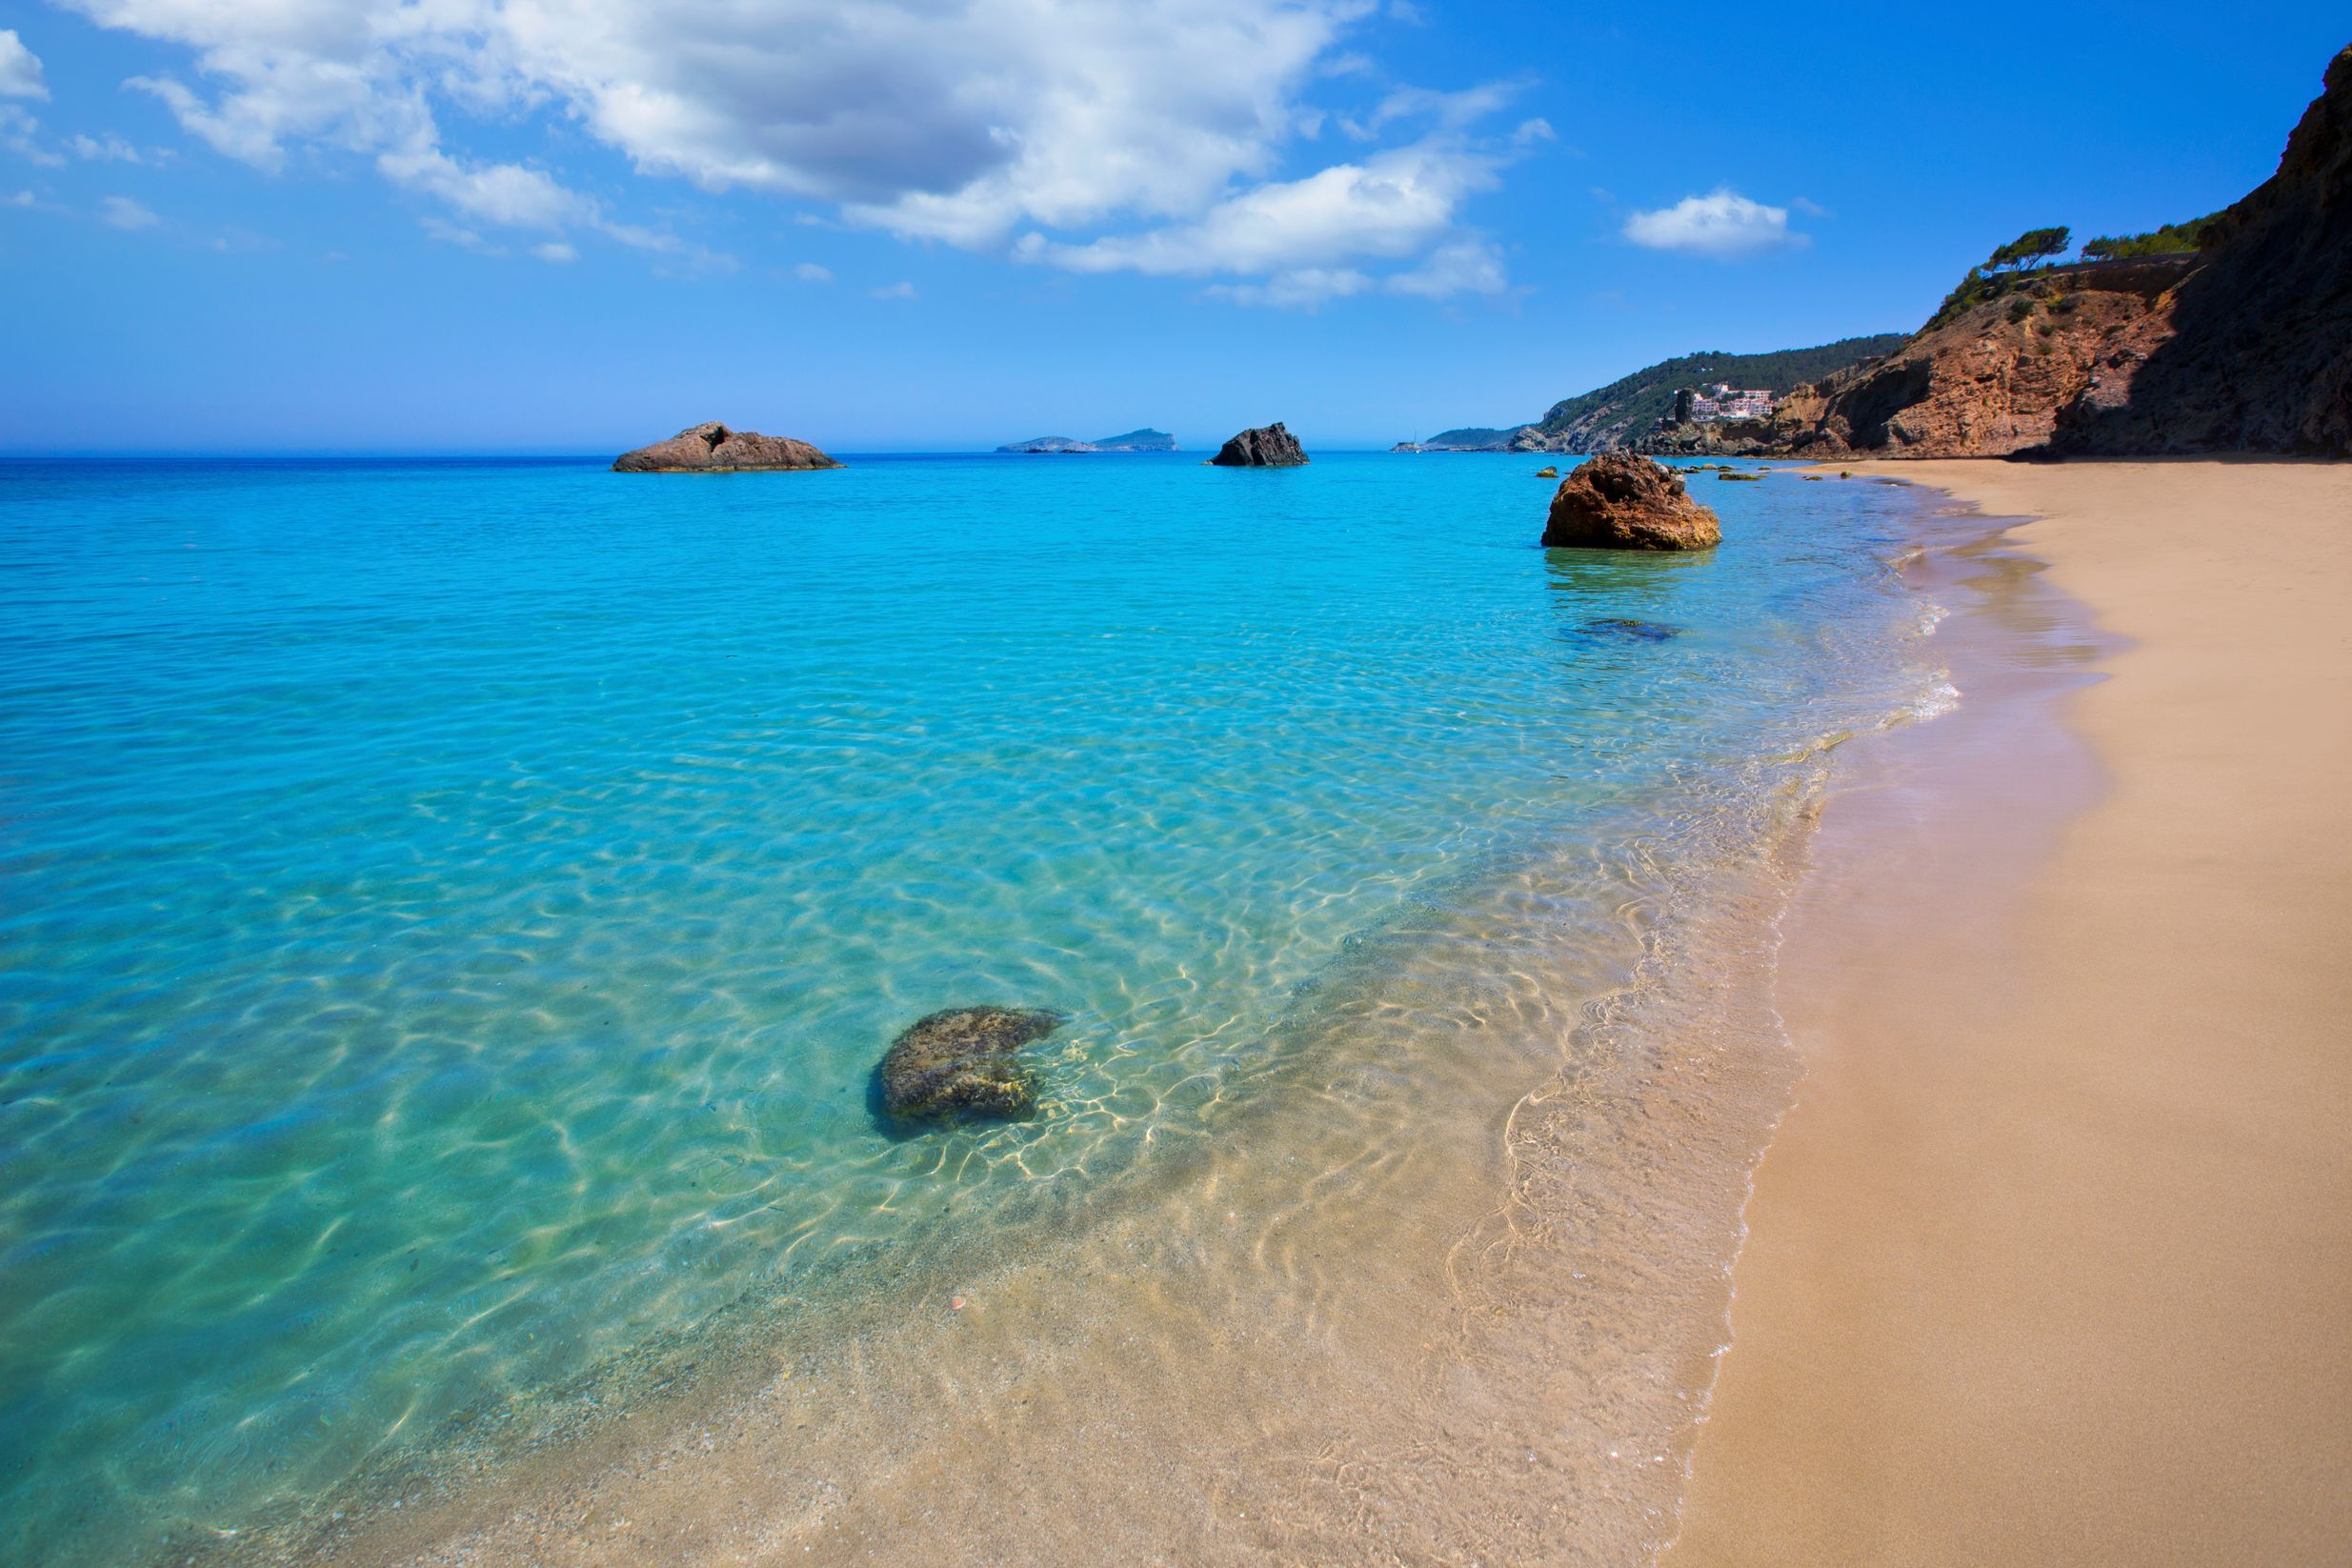 Beach in Ibiza - the 17 most beautiful places to visit in the Balearic Islands, Spain